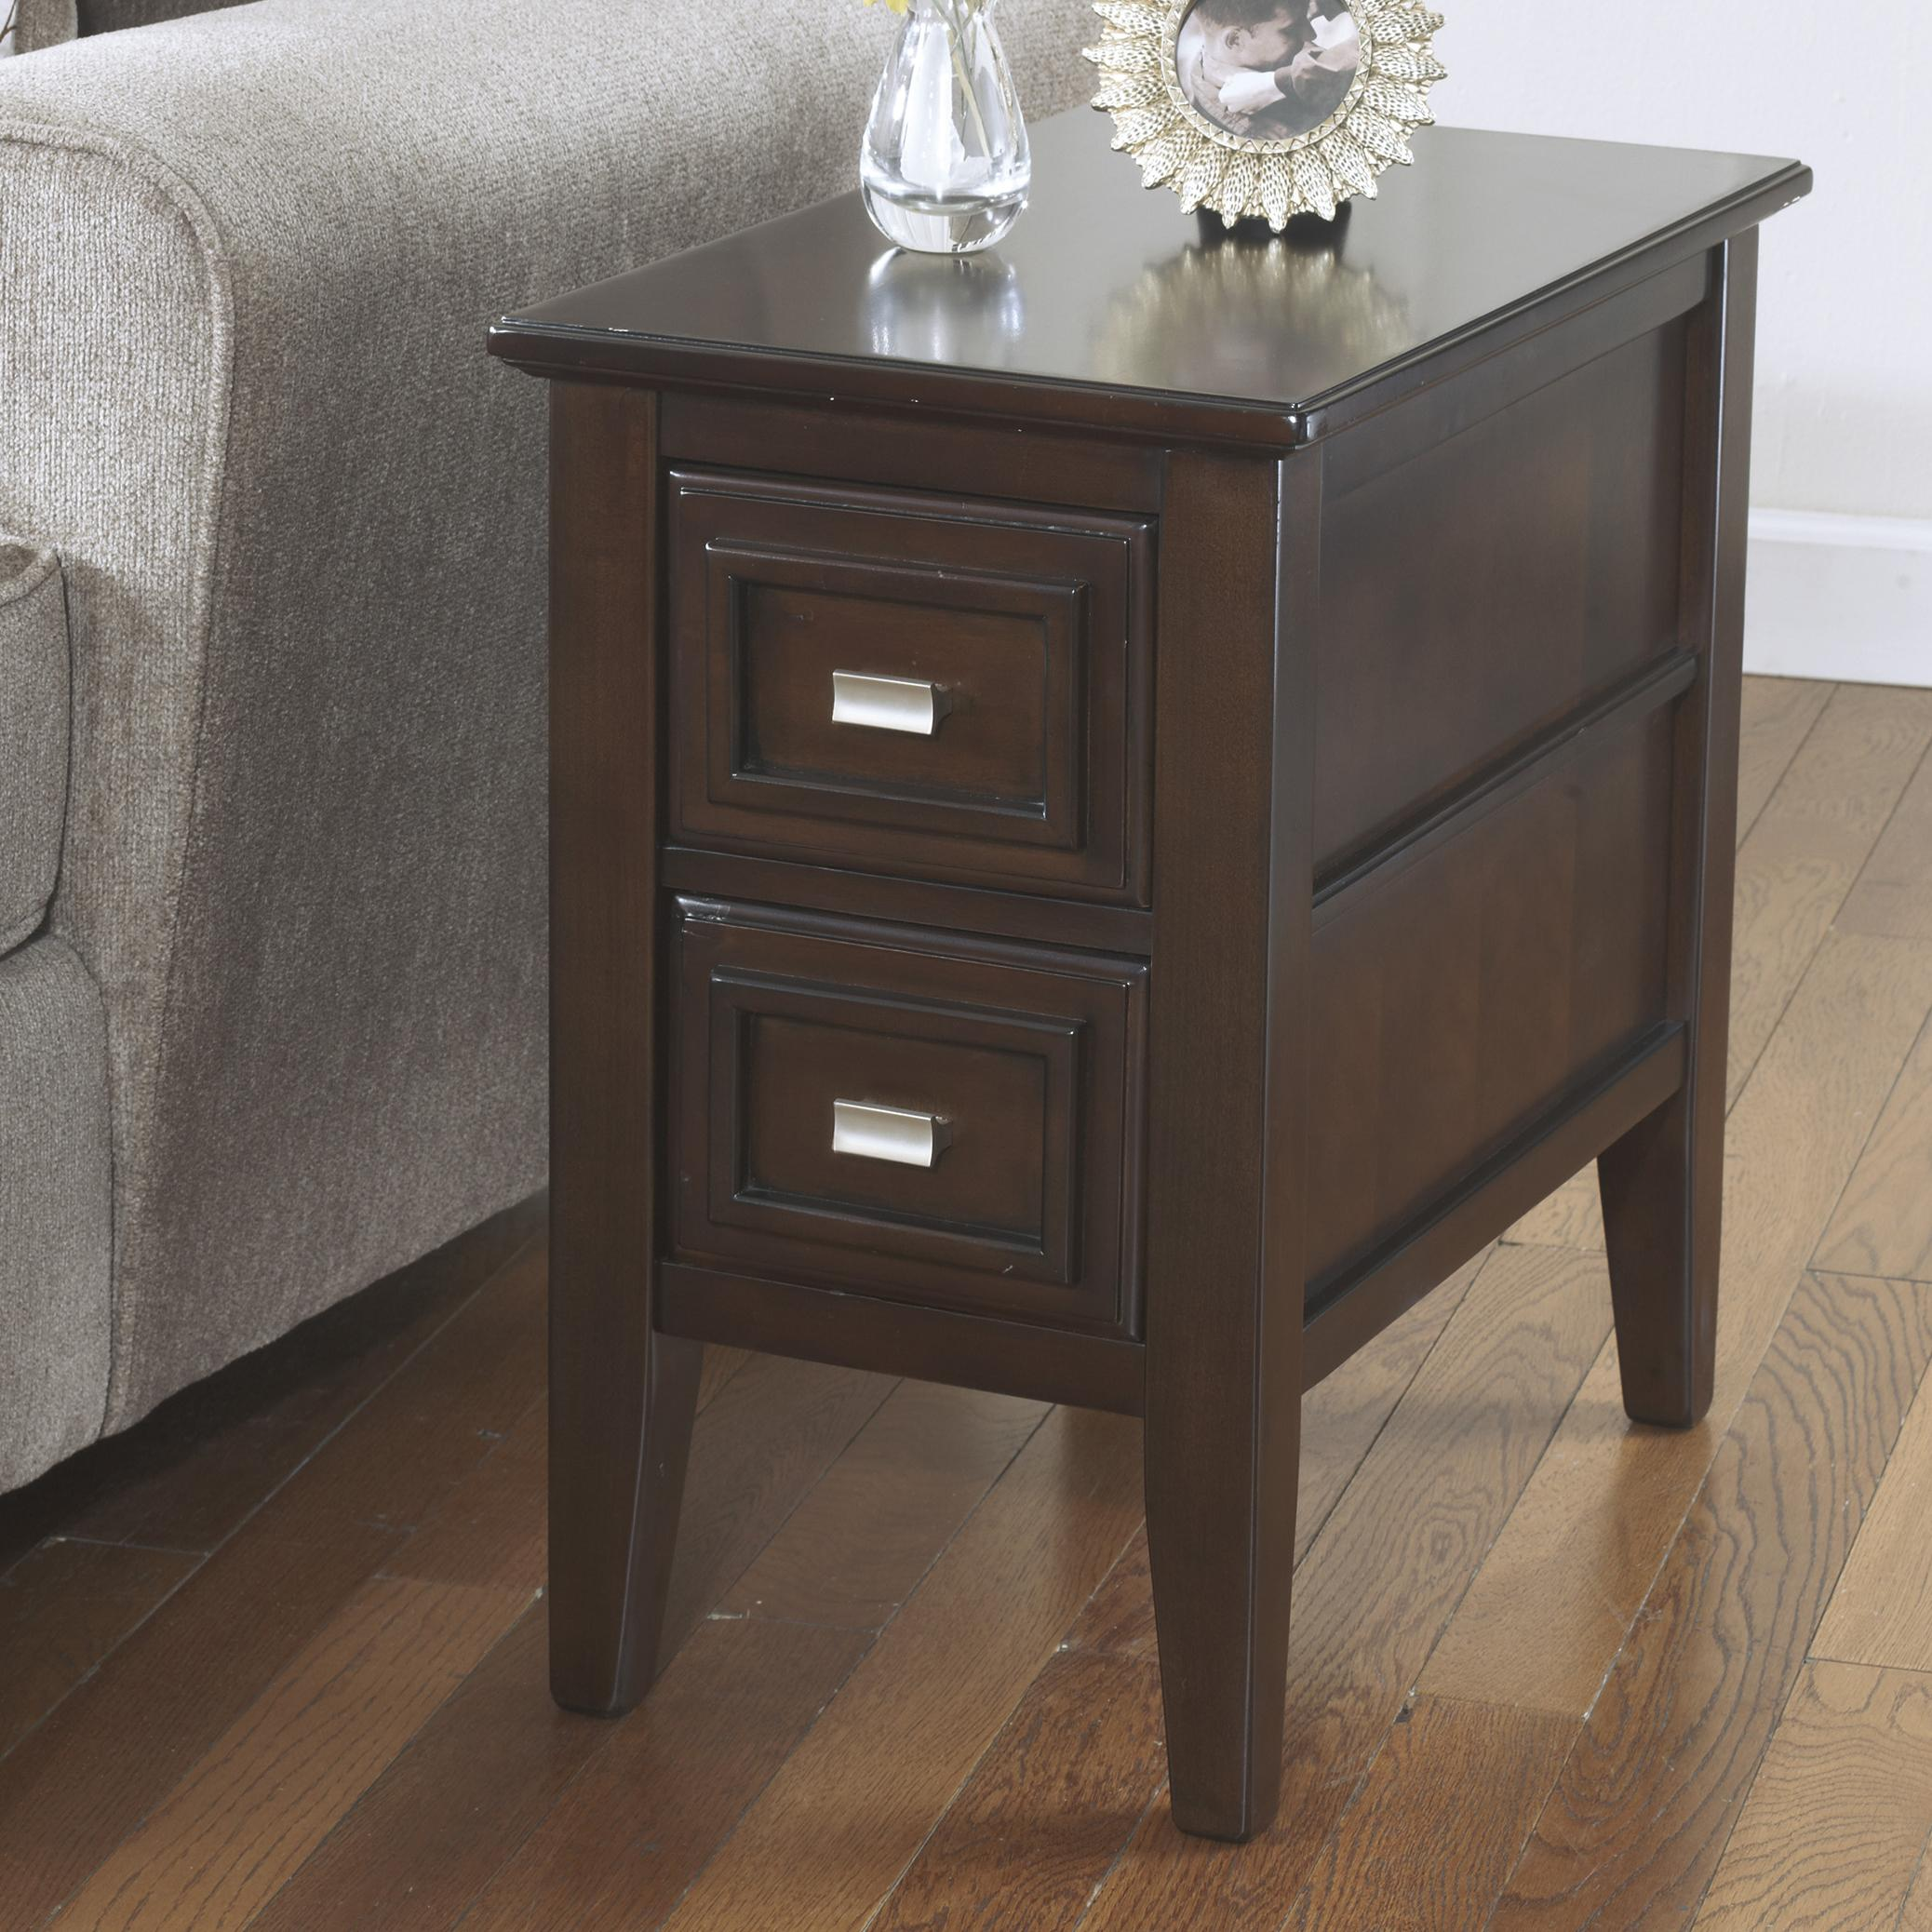 signature design ashley larimer chairside end table with drawers royal furniture accent tables chests and cabinets antique leather inlay dale lamp foyer console mirror set rustic